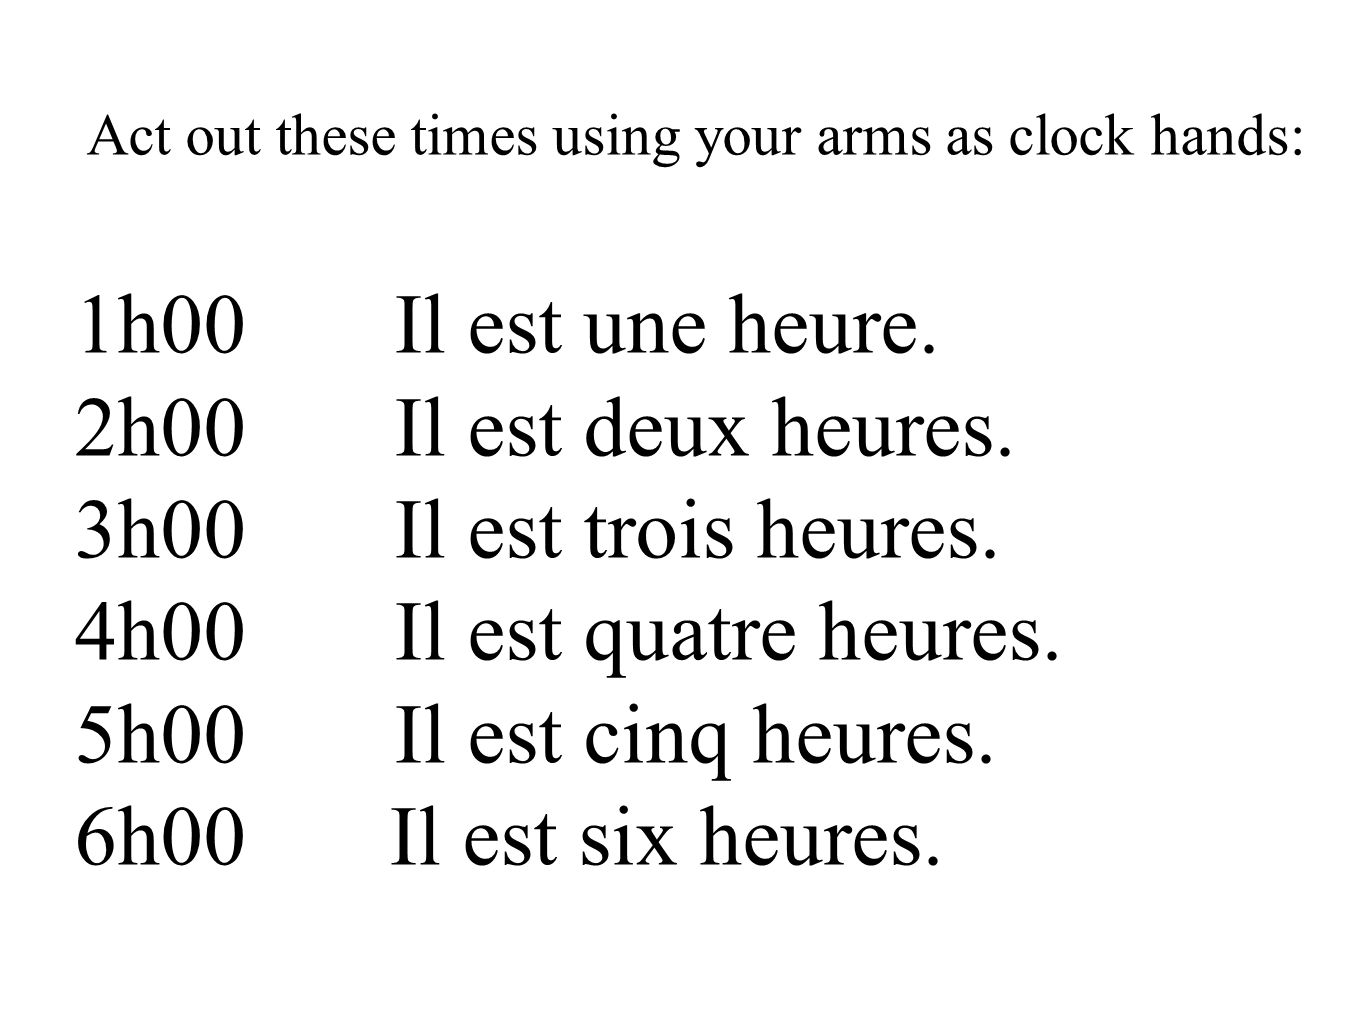 Act out these times using your arms as clock hands: